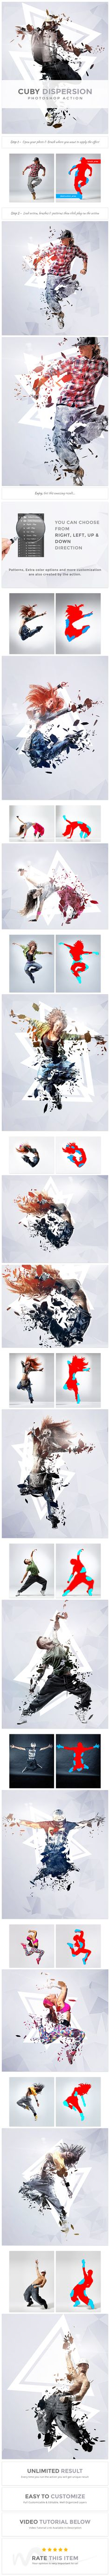 Cuby Dispersion | PS Action - Photo Effects Actions